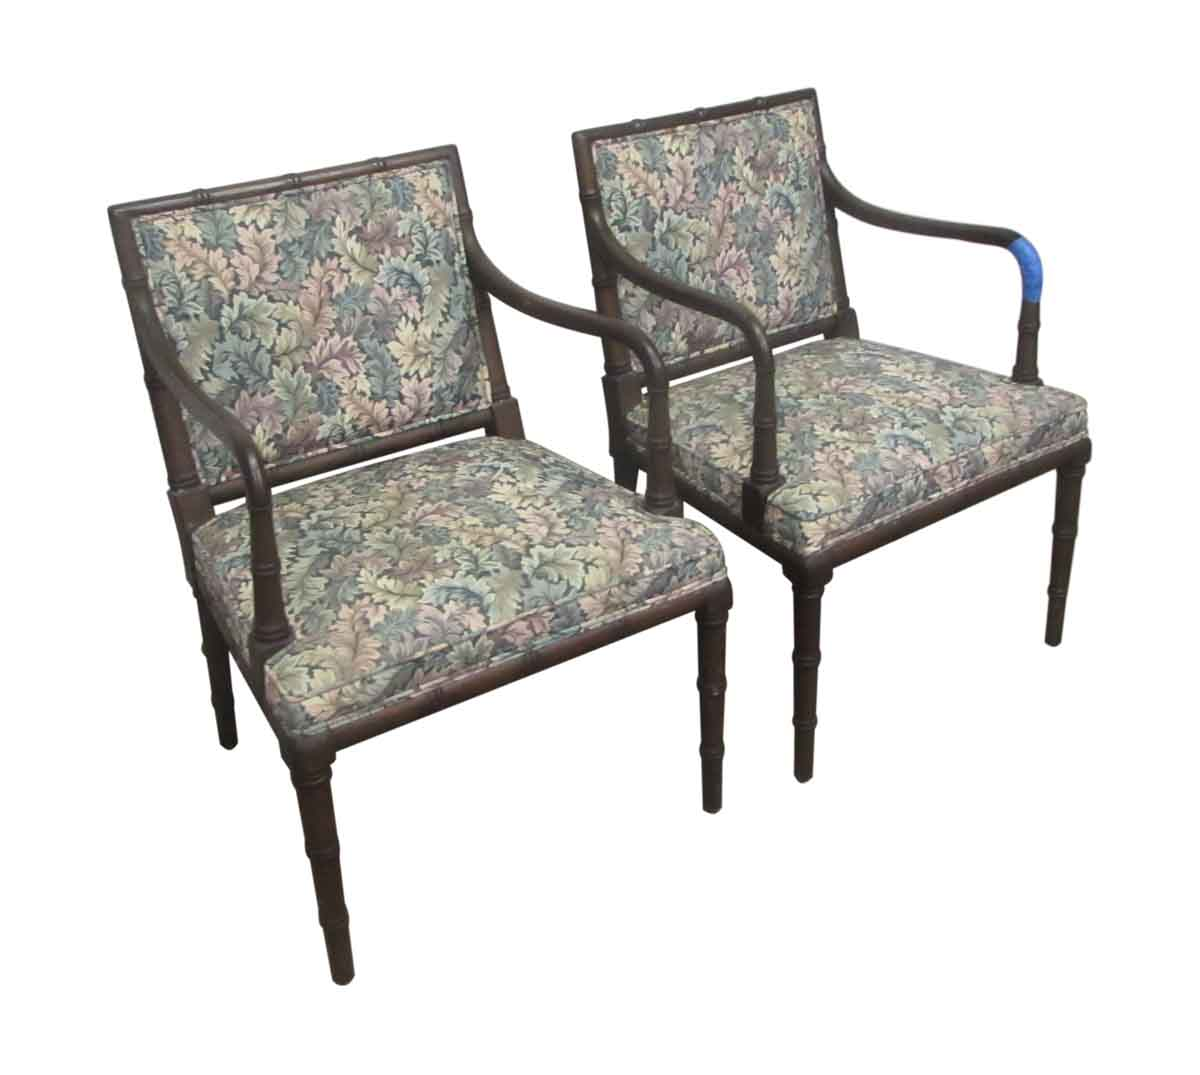 Pair of hickory antique chairs olde good things for Pair of chairs for living room